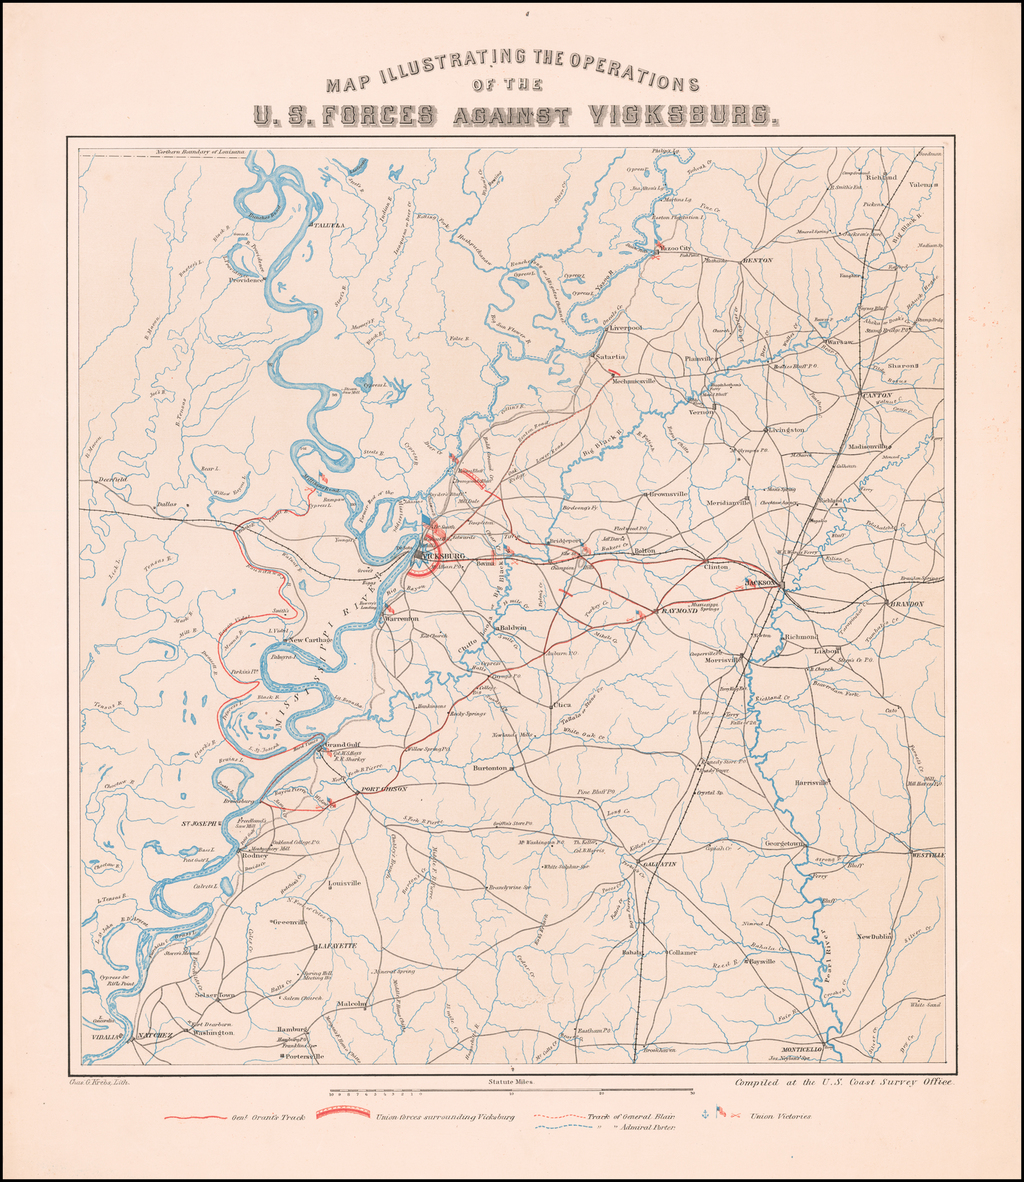 Map Illustrating The Operations of the U.S. Forces Against Vicksburg. By Charles G. Krebs